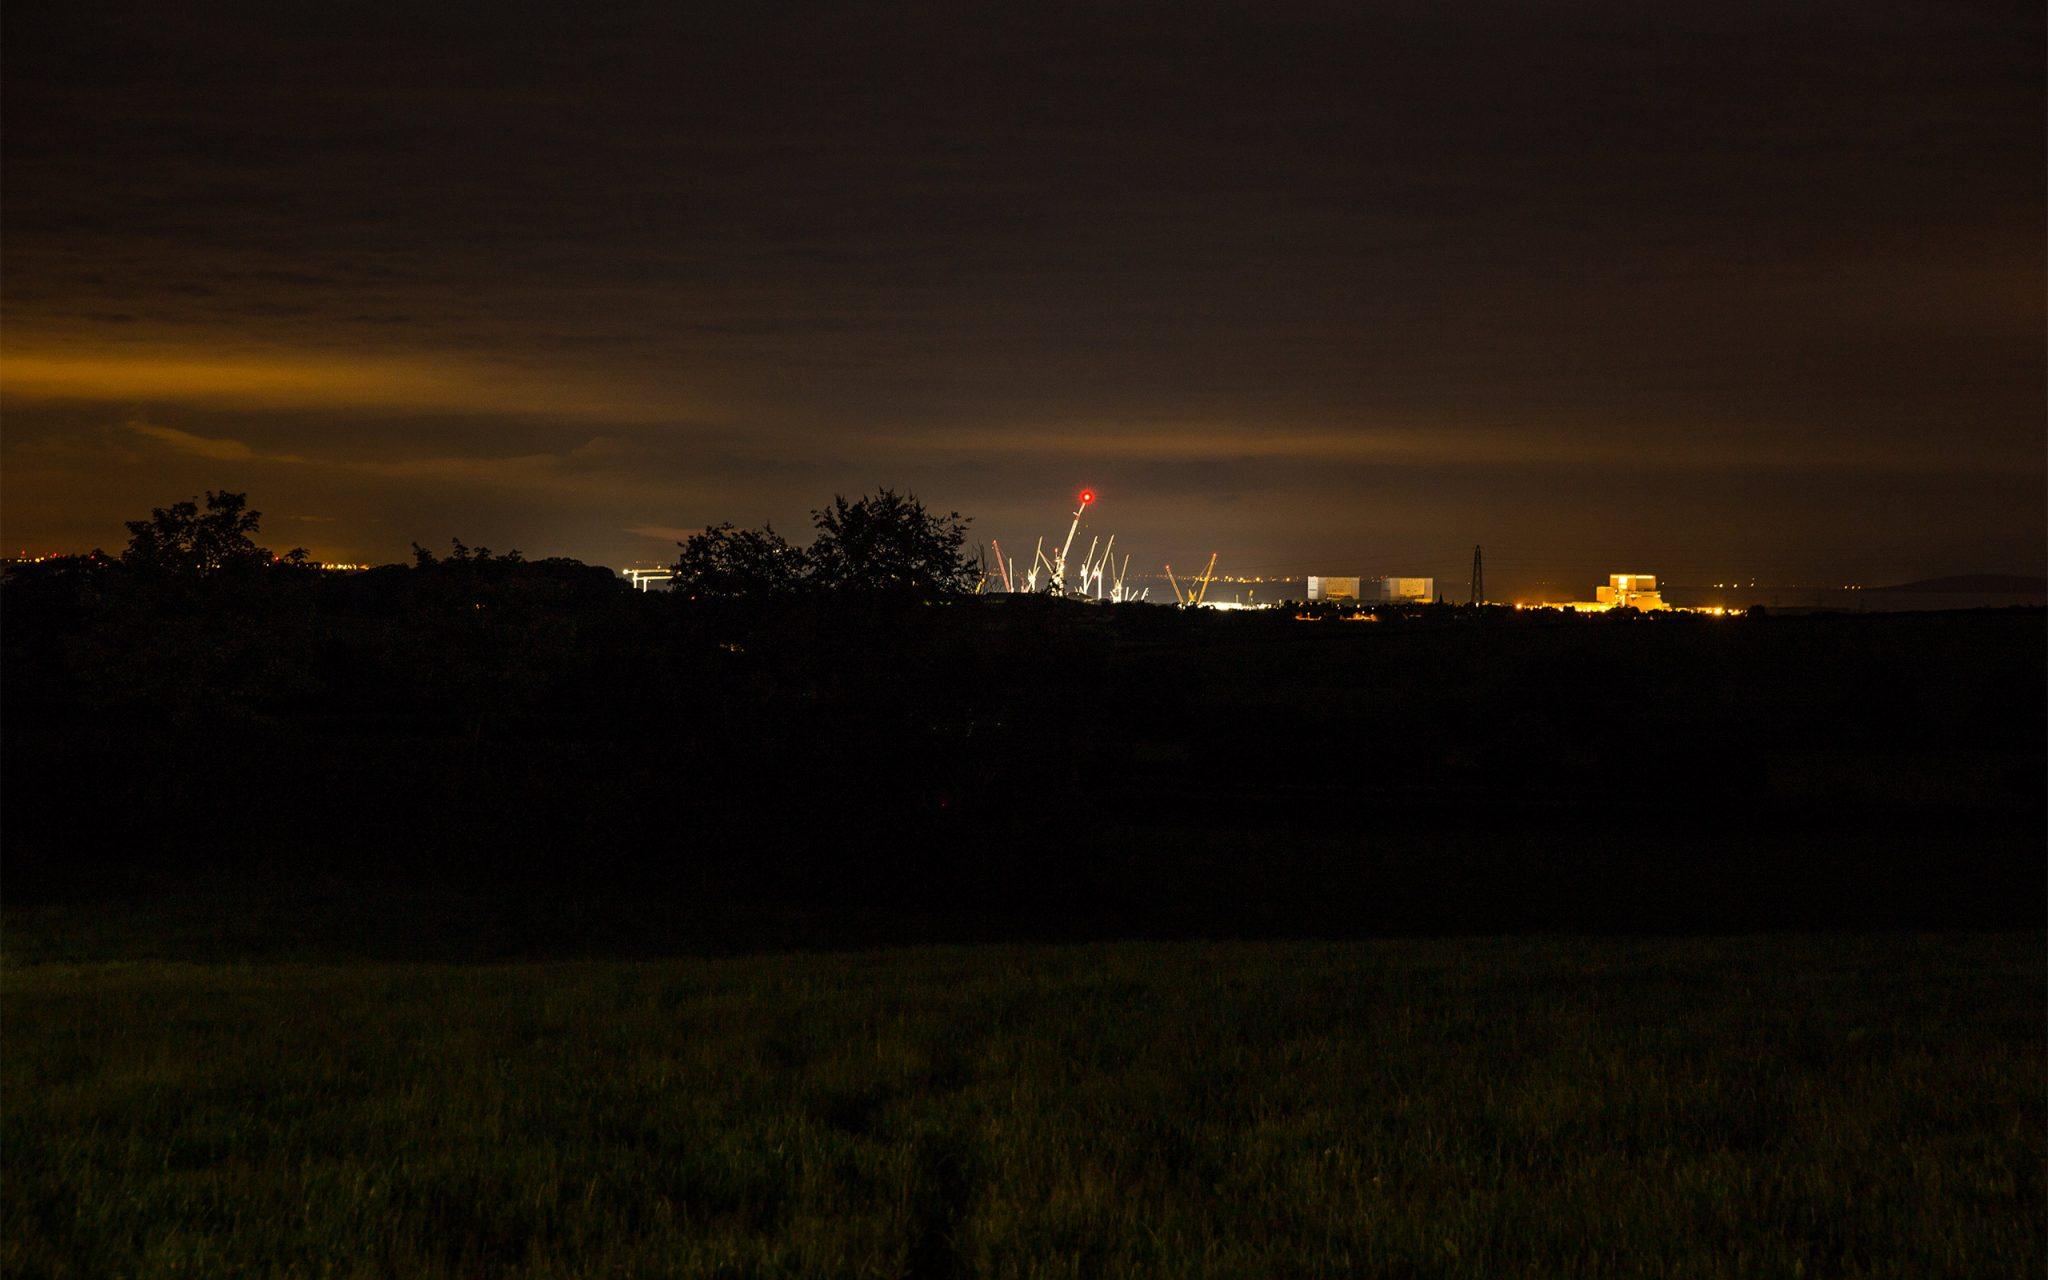 Hinkley Point C, nuclear power station, Europe's largest construction site, Carey Marks photography